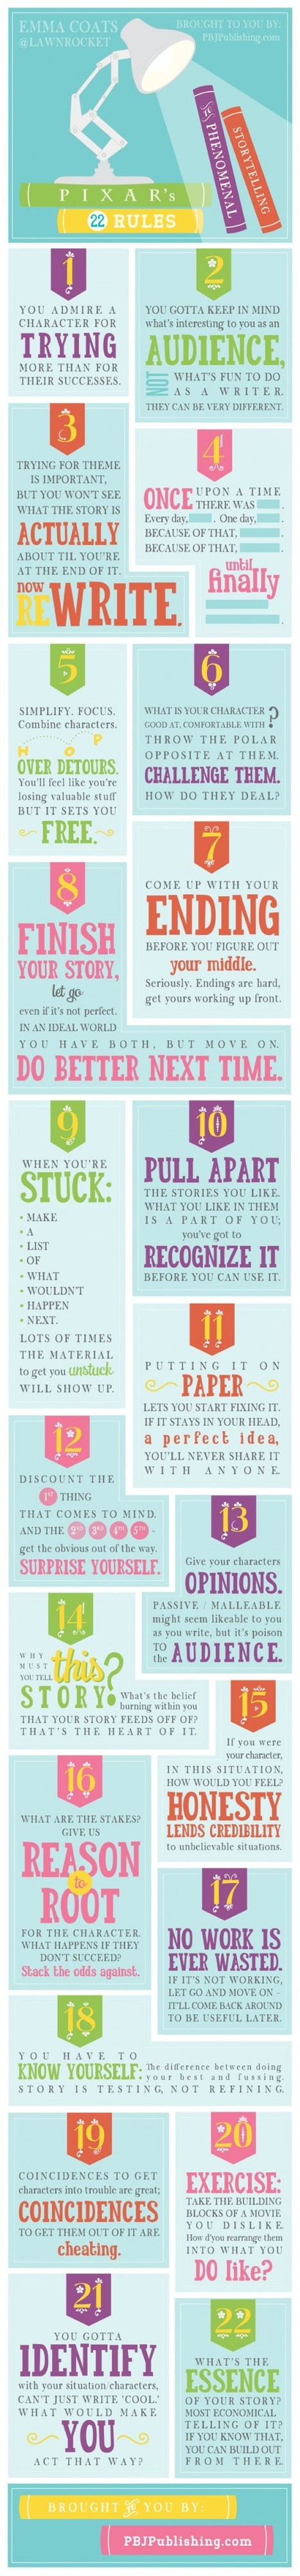 Pixar's 22 Rules to Phenomenal Storytelling [INFOGRAPHIC] | Transmedia: Storytelling for the Digital Age | Scoop.it